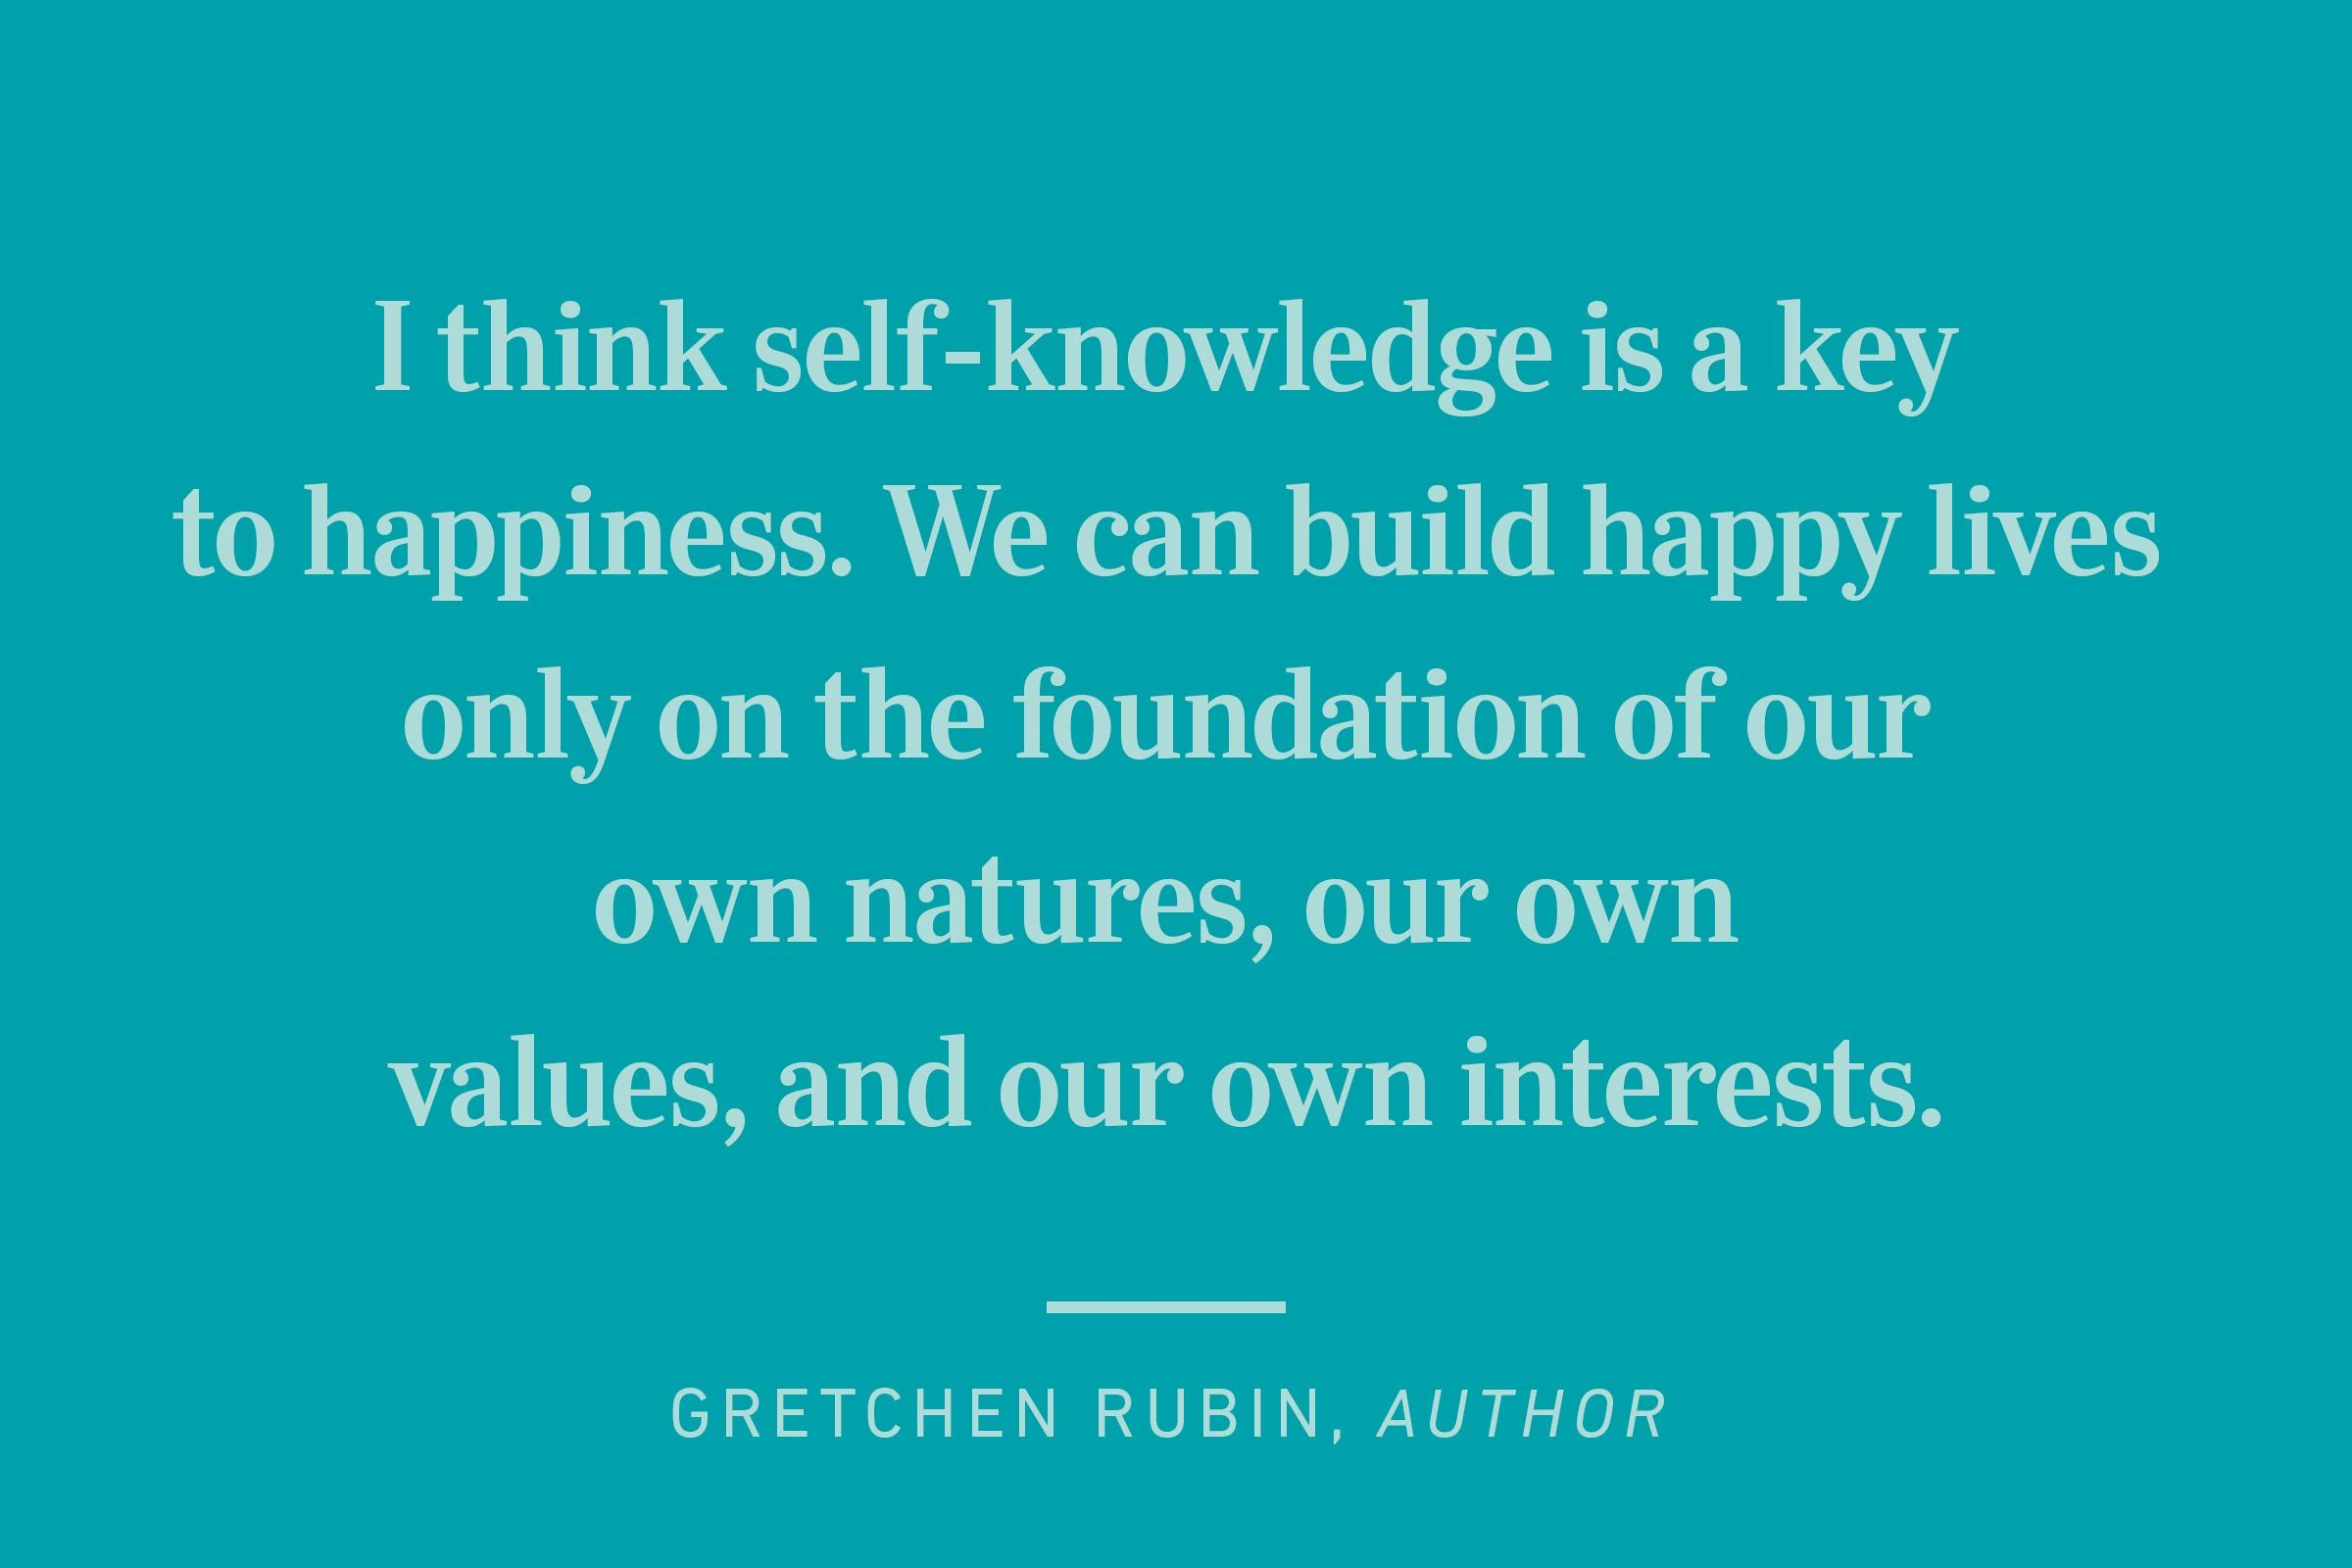 gretchen rubin happiness quote